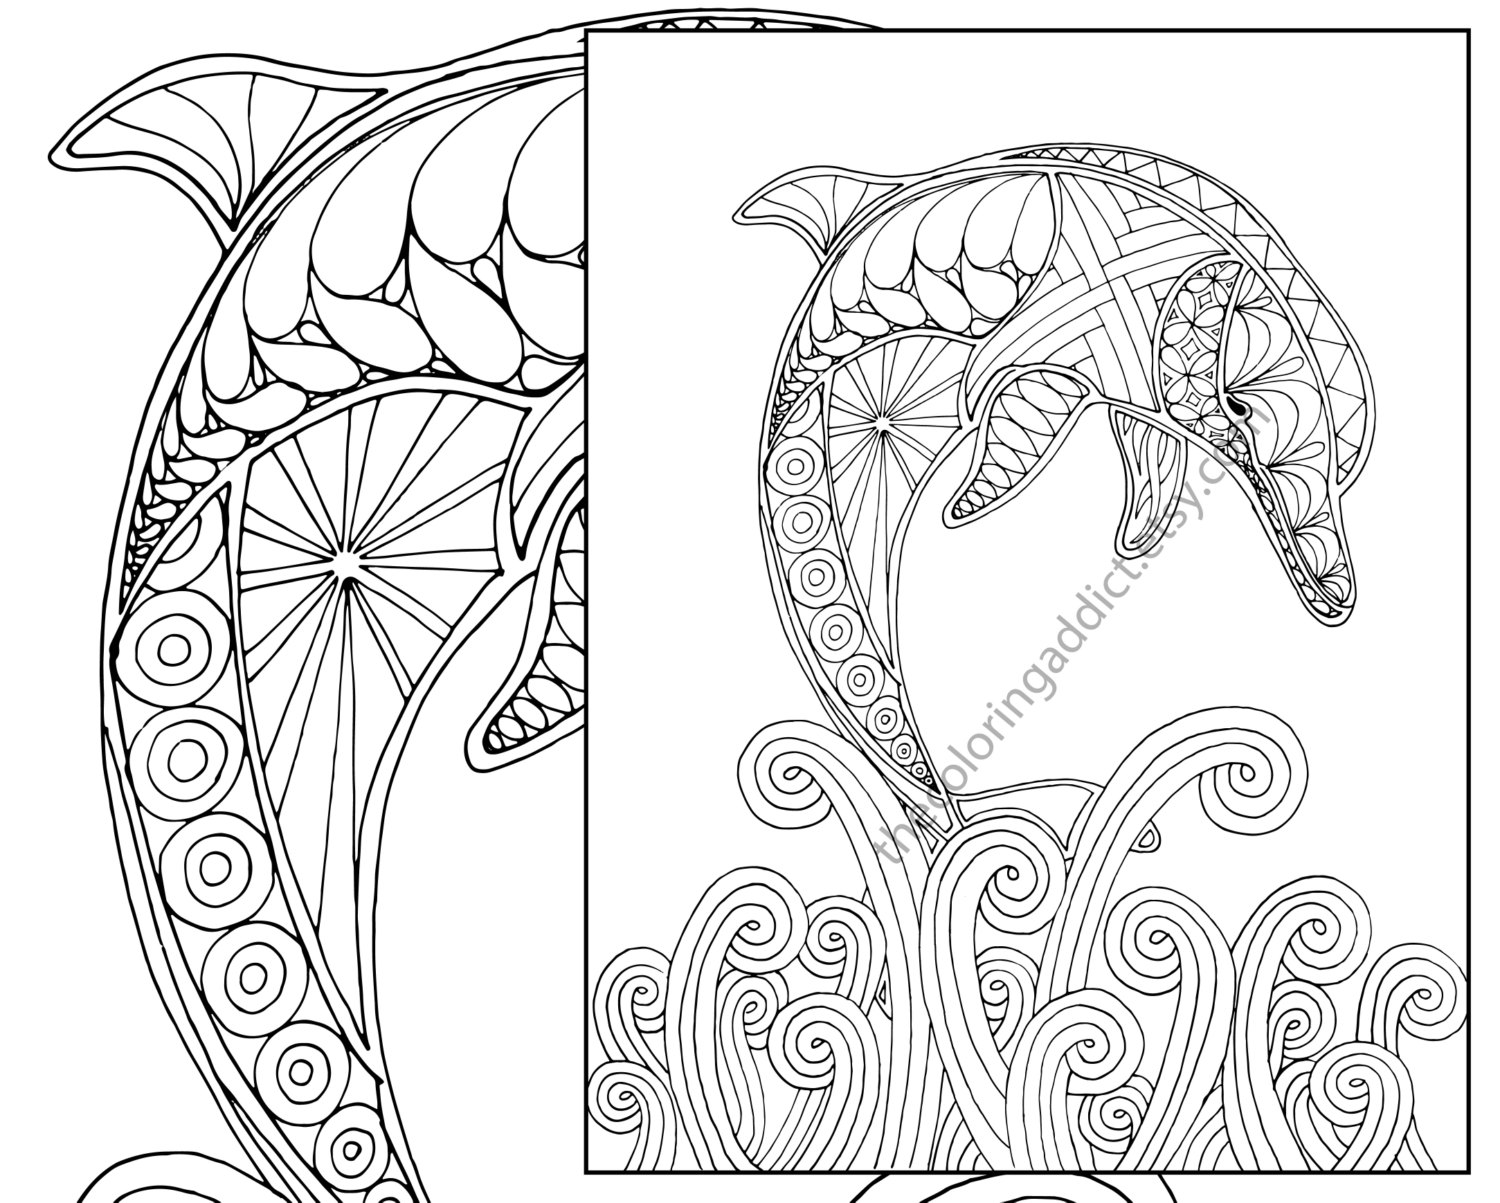 Psychology Coloring Pages At Getcolorings